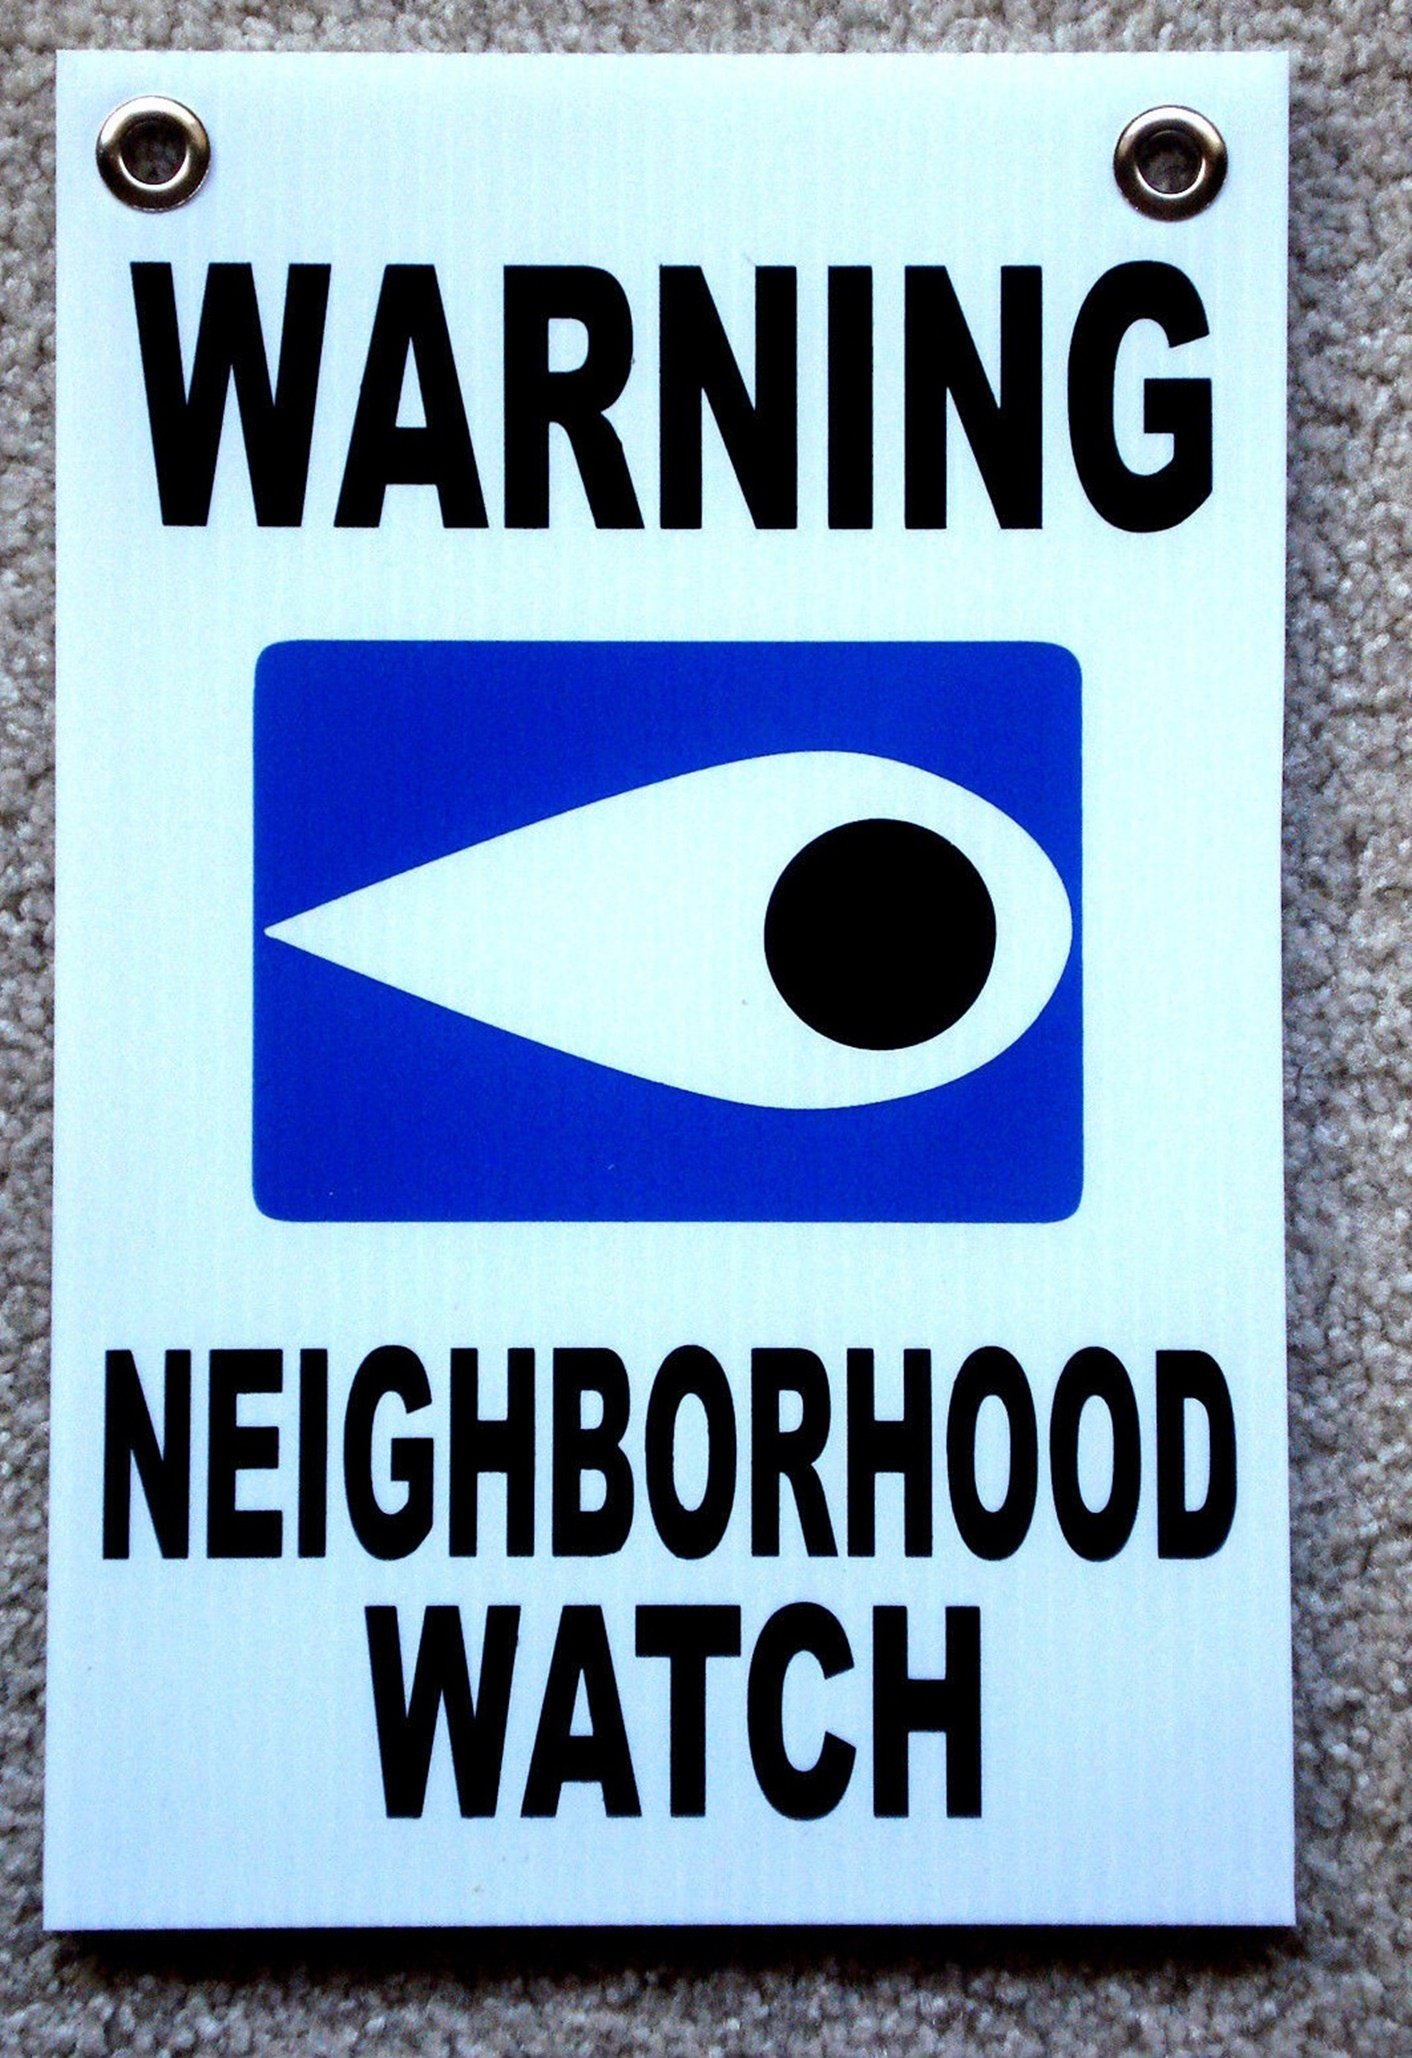 1 Pcs Inspiring Unique Warning Neighborhood Watch Sign Protection Holder Door Hanger Business Window Post Tools Home Premises Hour Yard Signs Security Under Cameras Protected Size 8''x12'' w/ Grommets